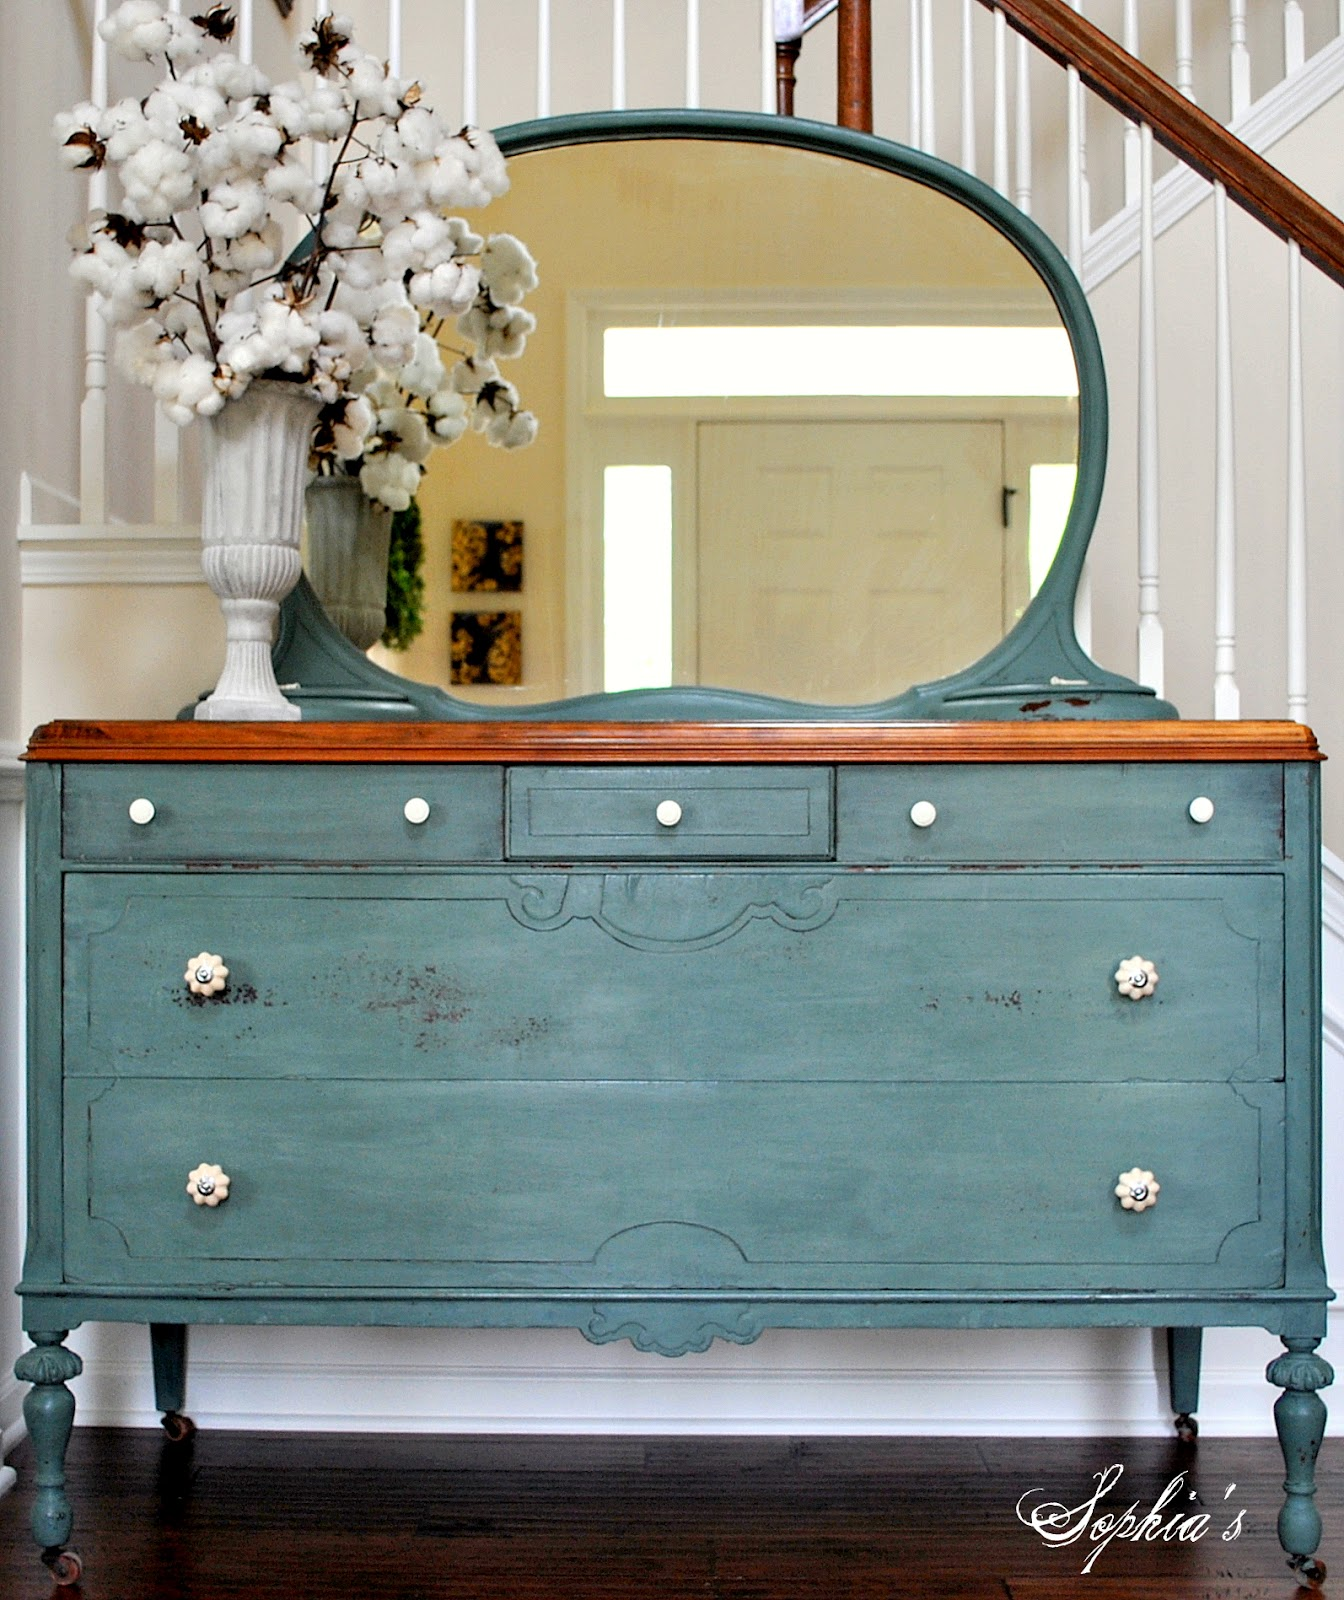 Painting And Furnishing Ideas: Sophia's: Milk Paint Dresser